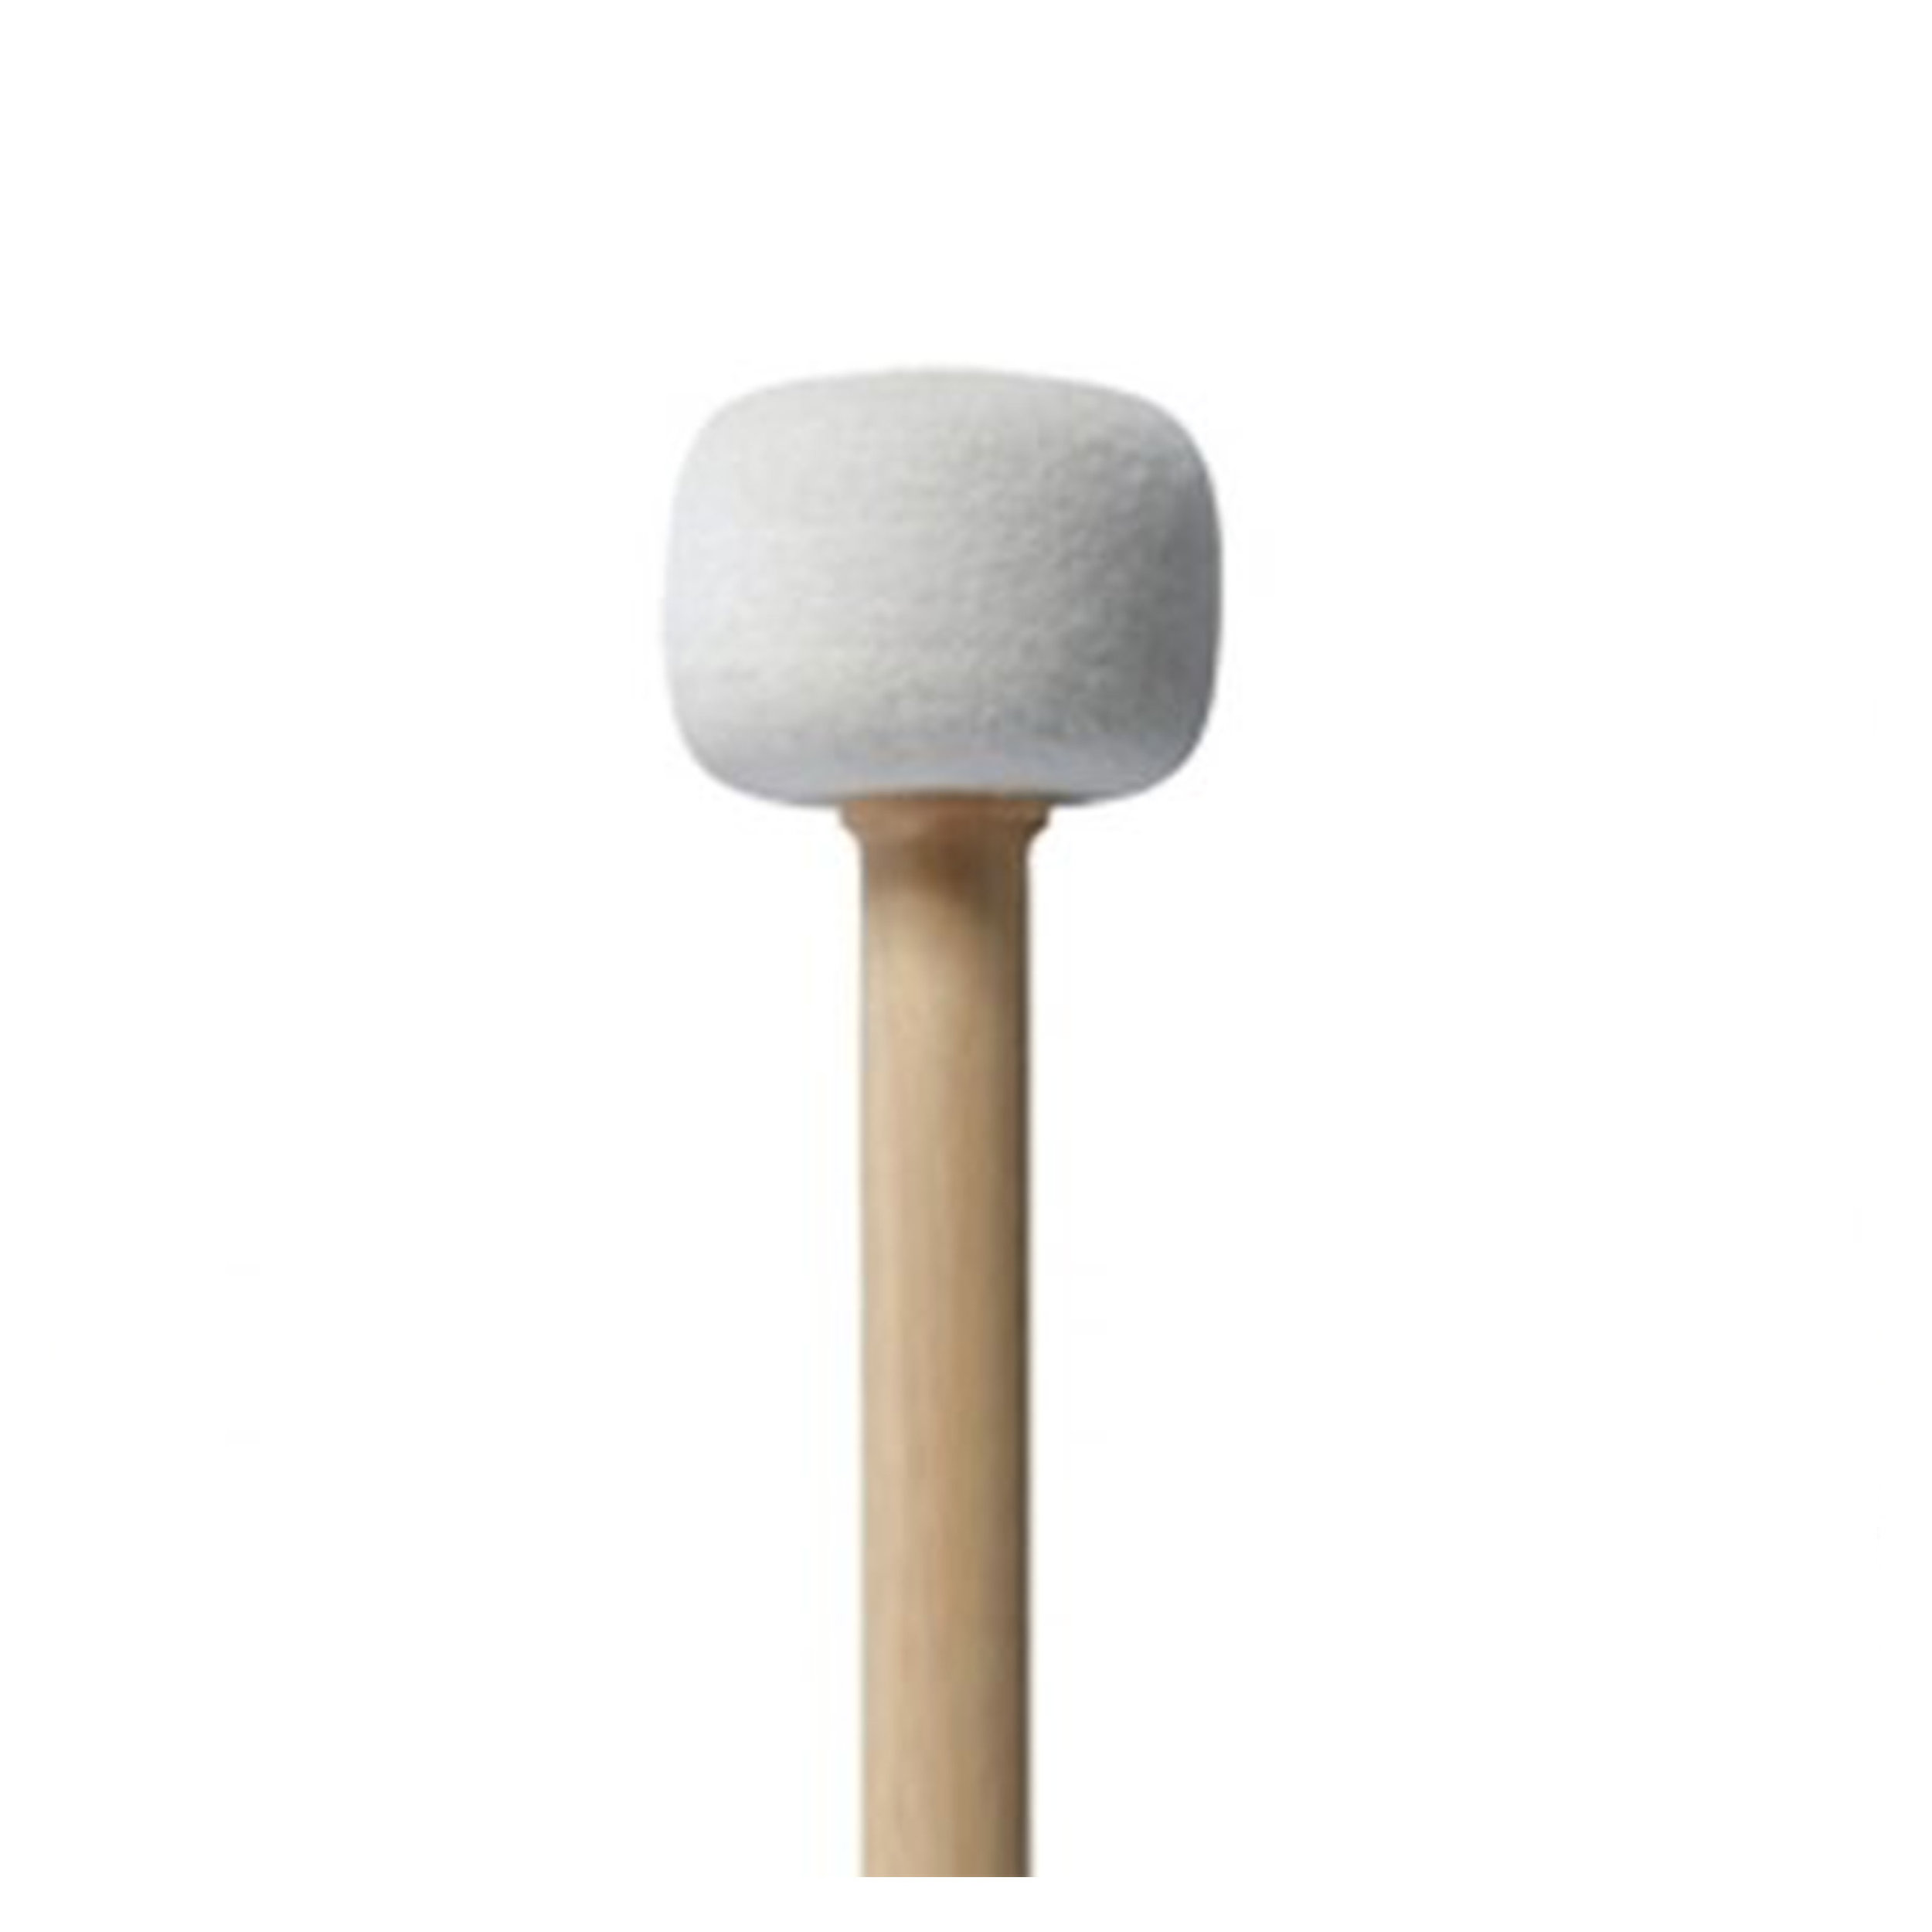 Mallets & Other